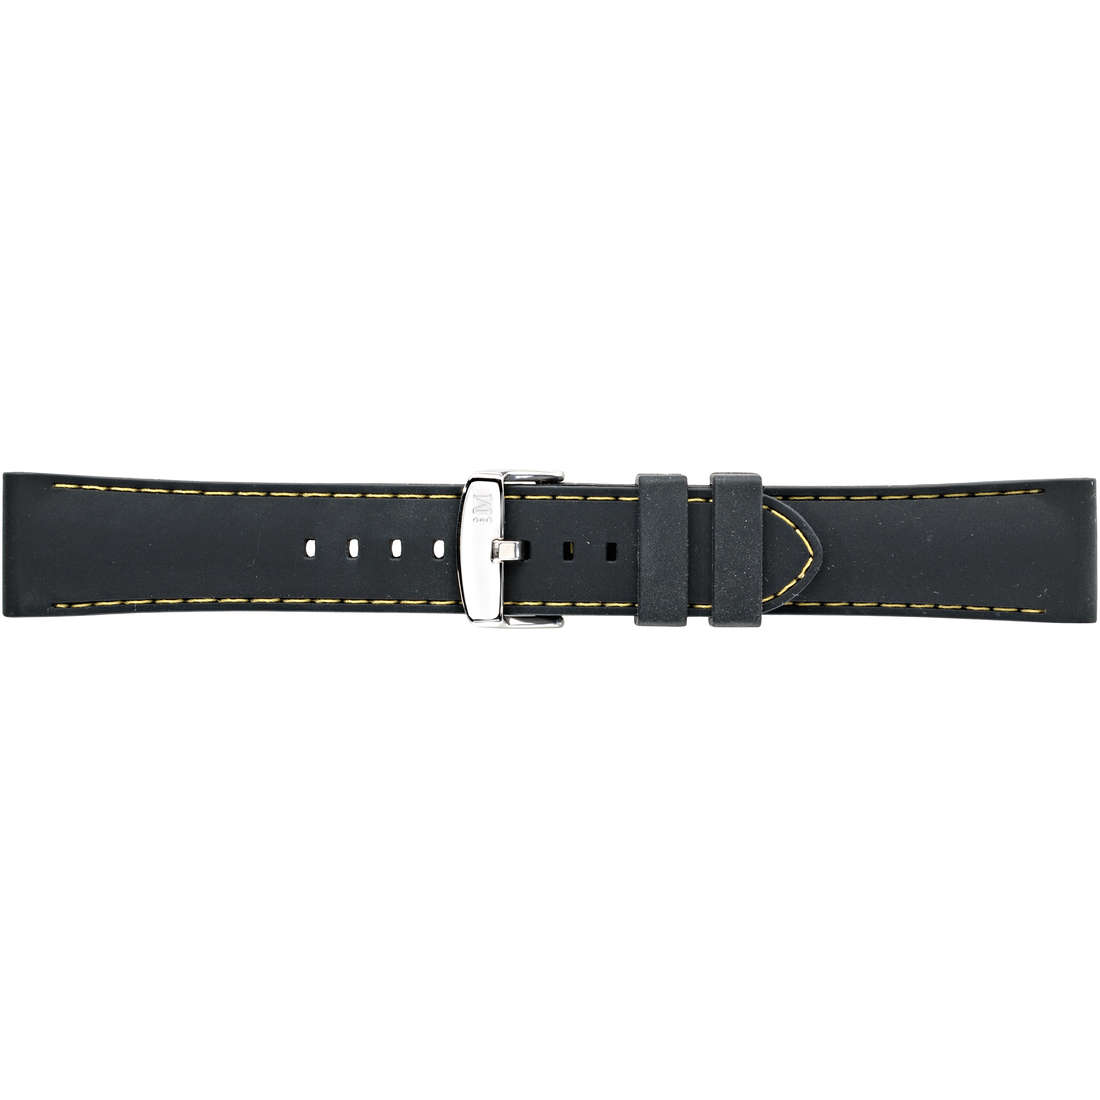 watch watch bands watch straps man Morellato Technogomma A01U3844187897CR24